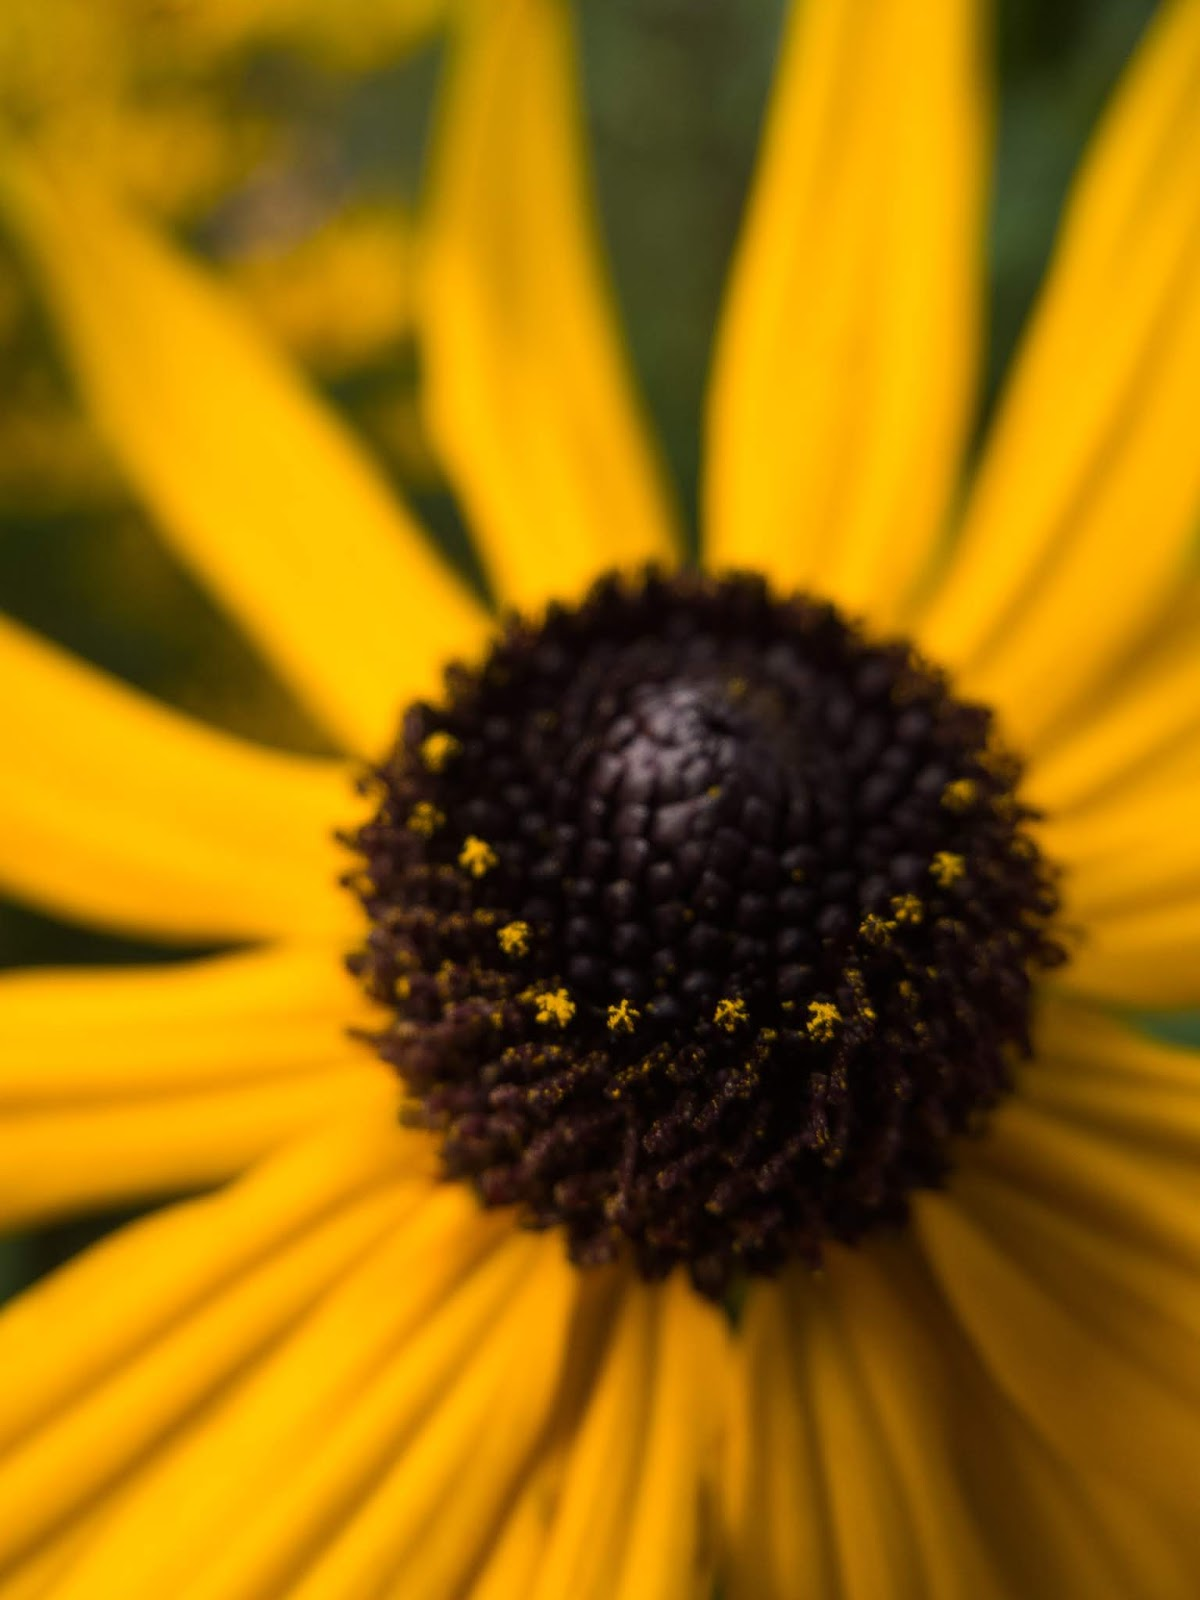 A macro of the centre of a Black Eyed Susan flower.